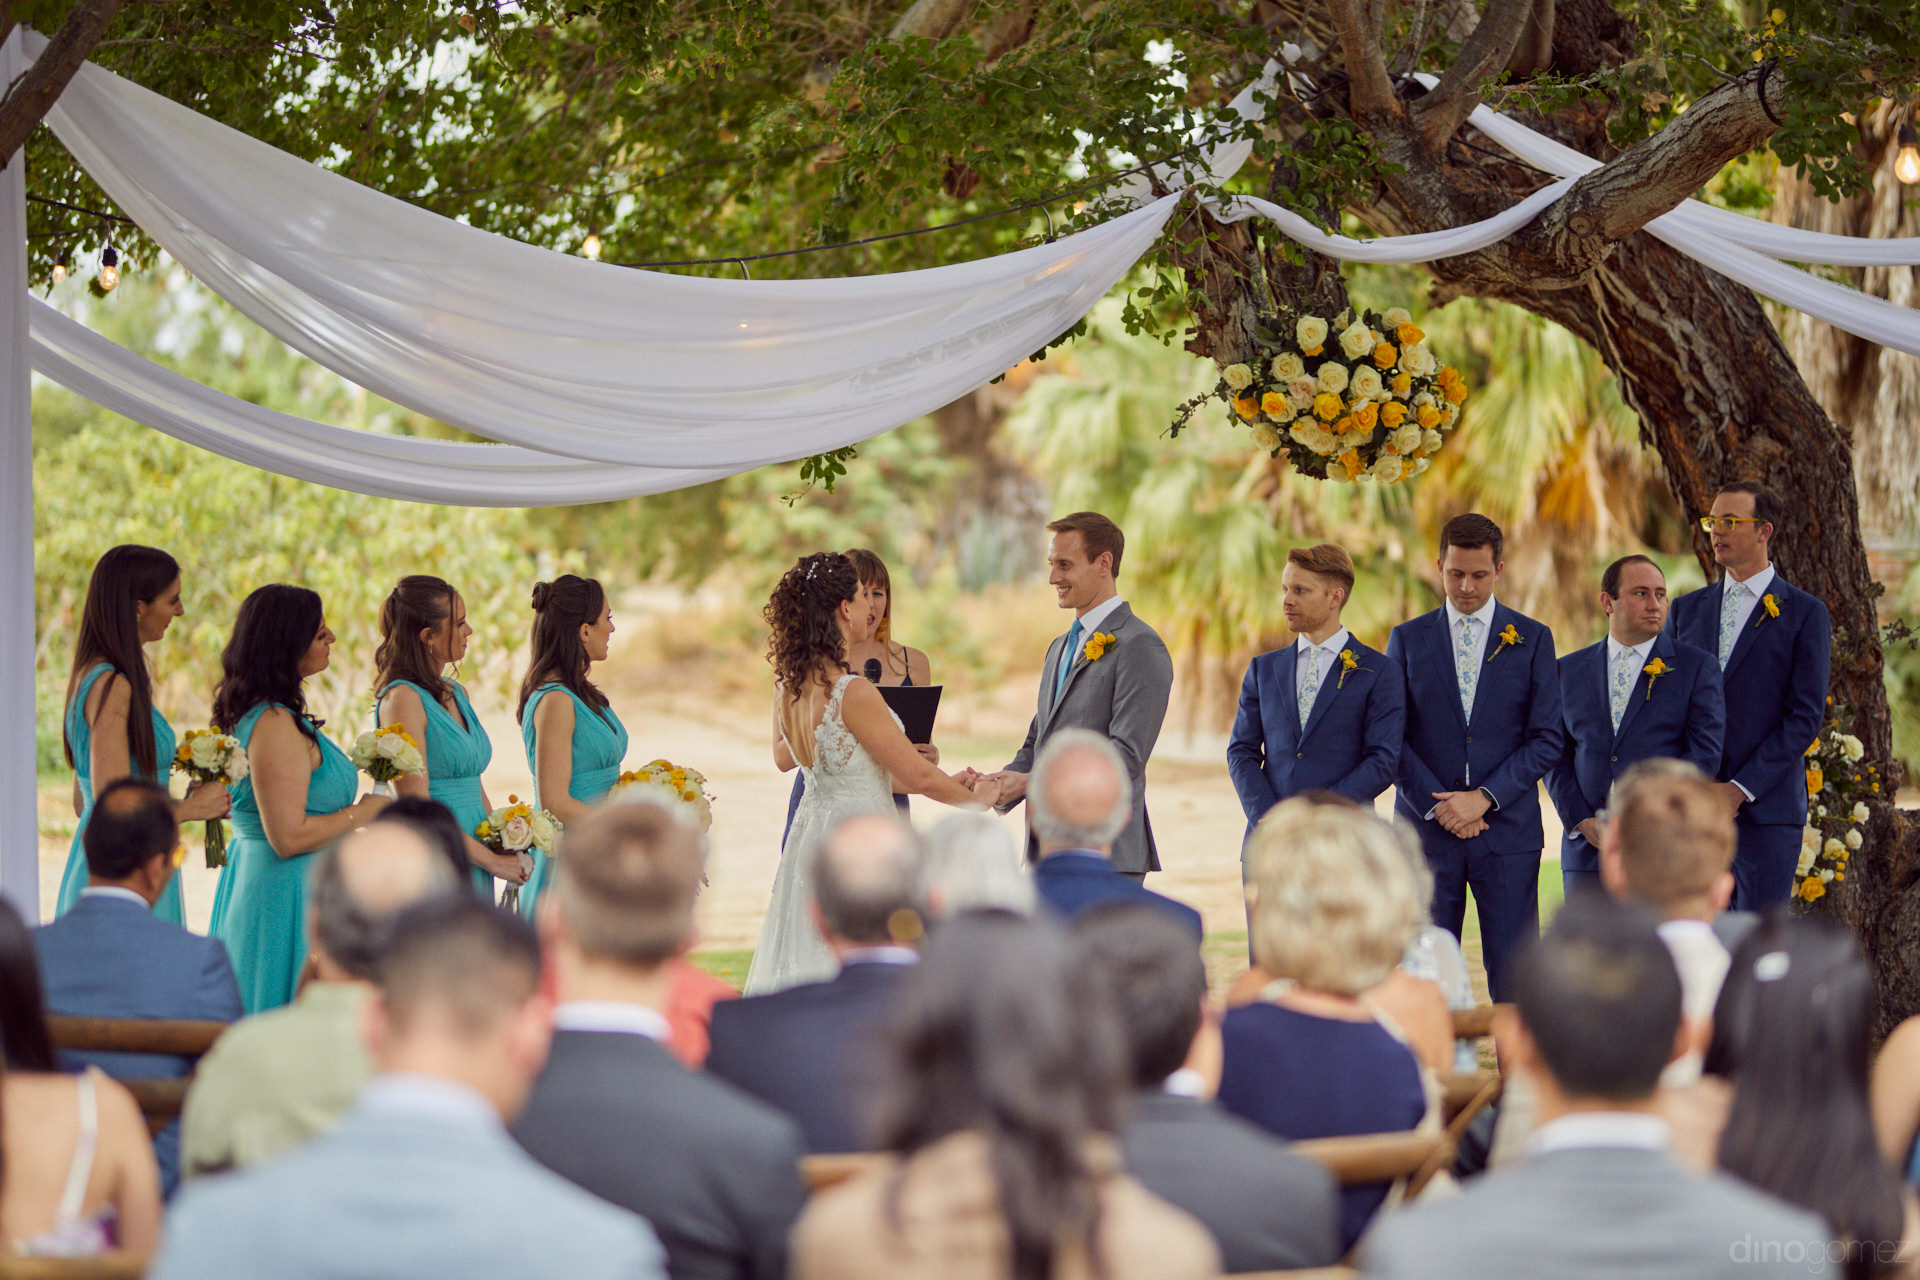 Places To Get Married In Cabo San Lucas Like Flora Farms - Hilary & Bryan Flora Wedding